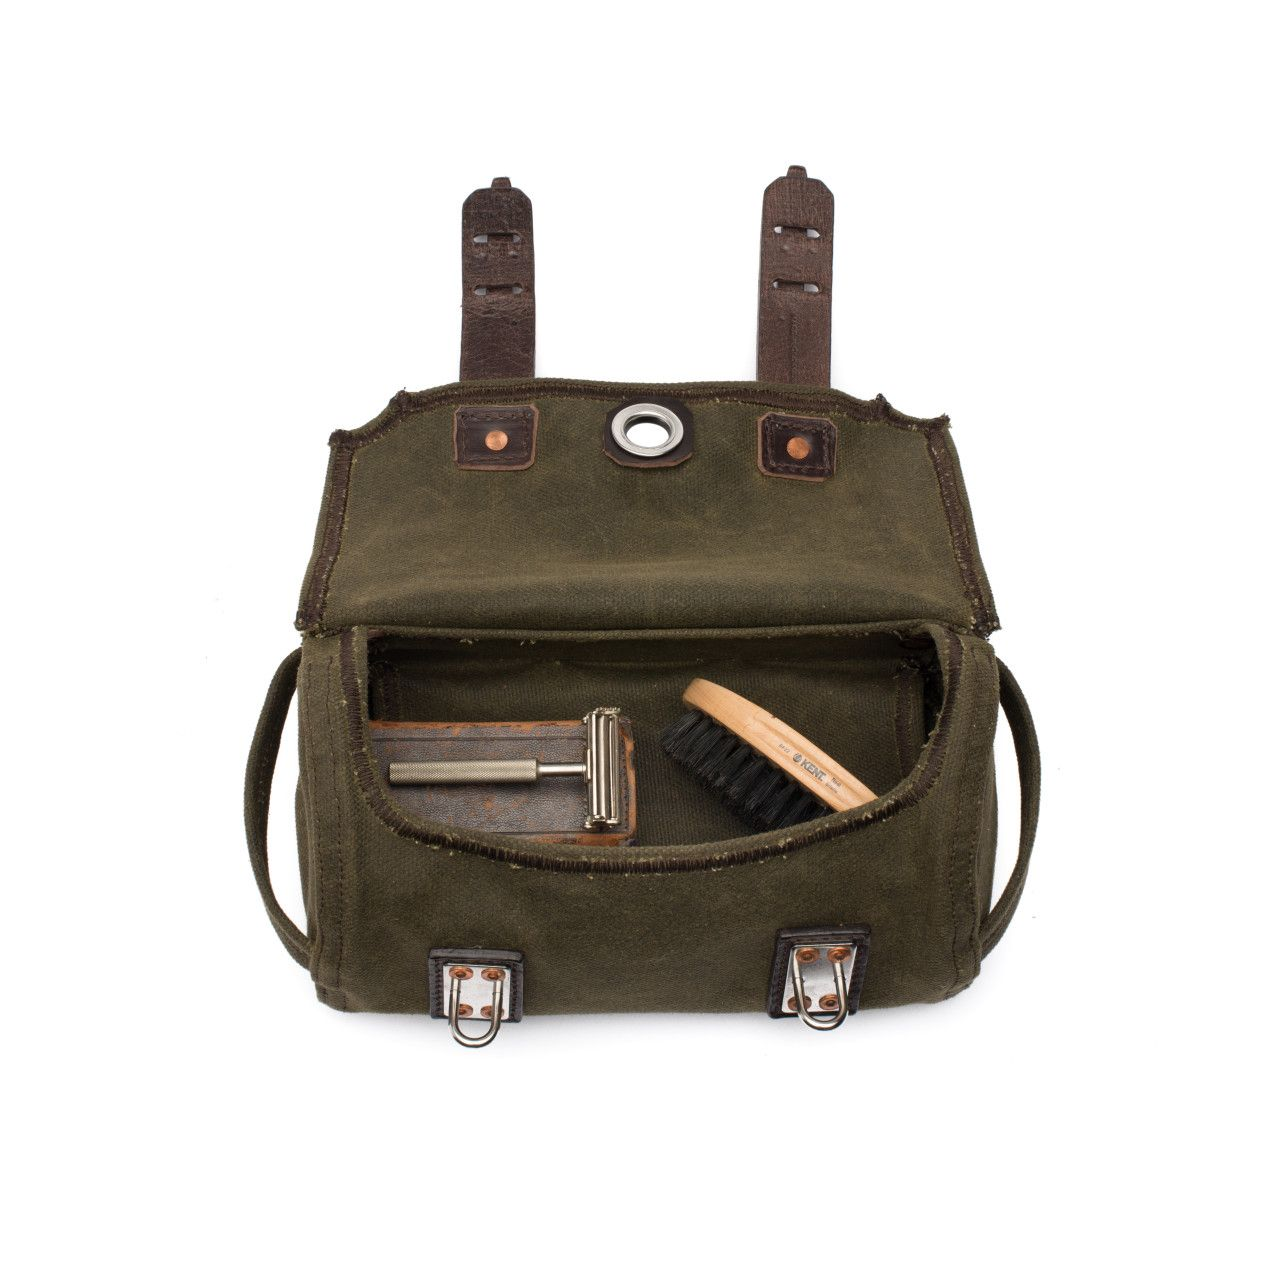 canvas dopp kit medium in moss green canvas with a brush and razor in the interior